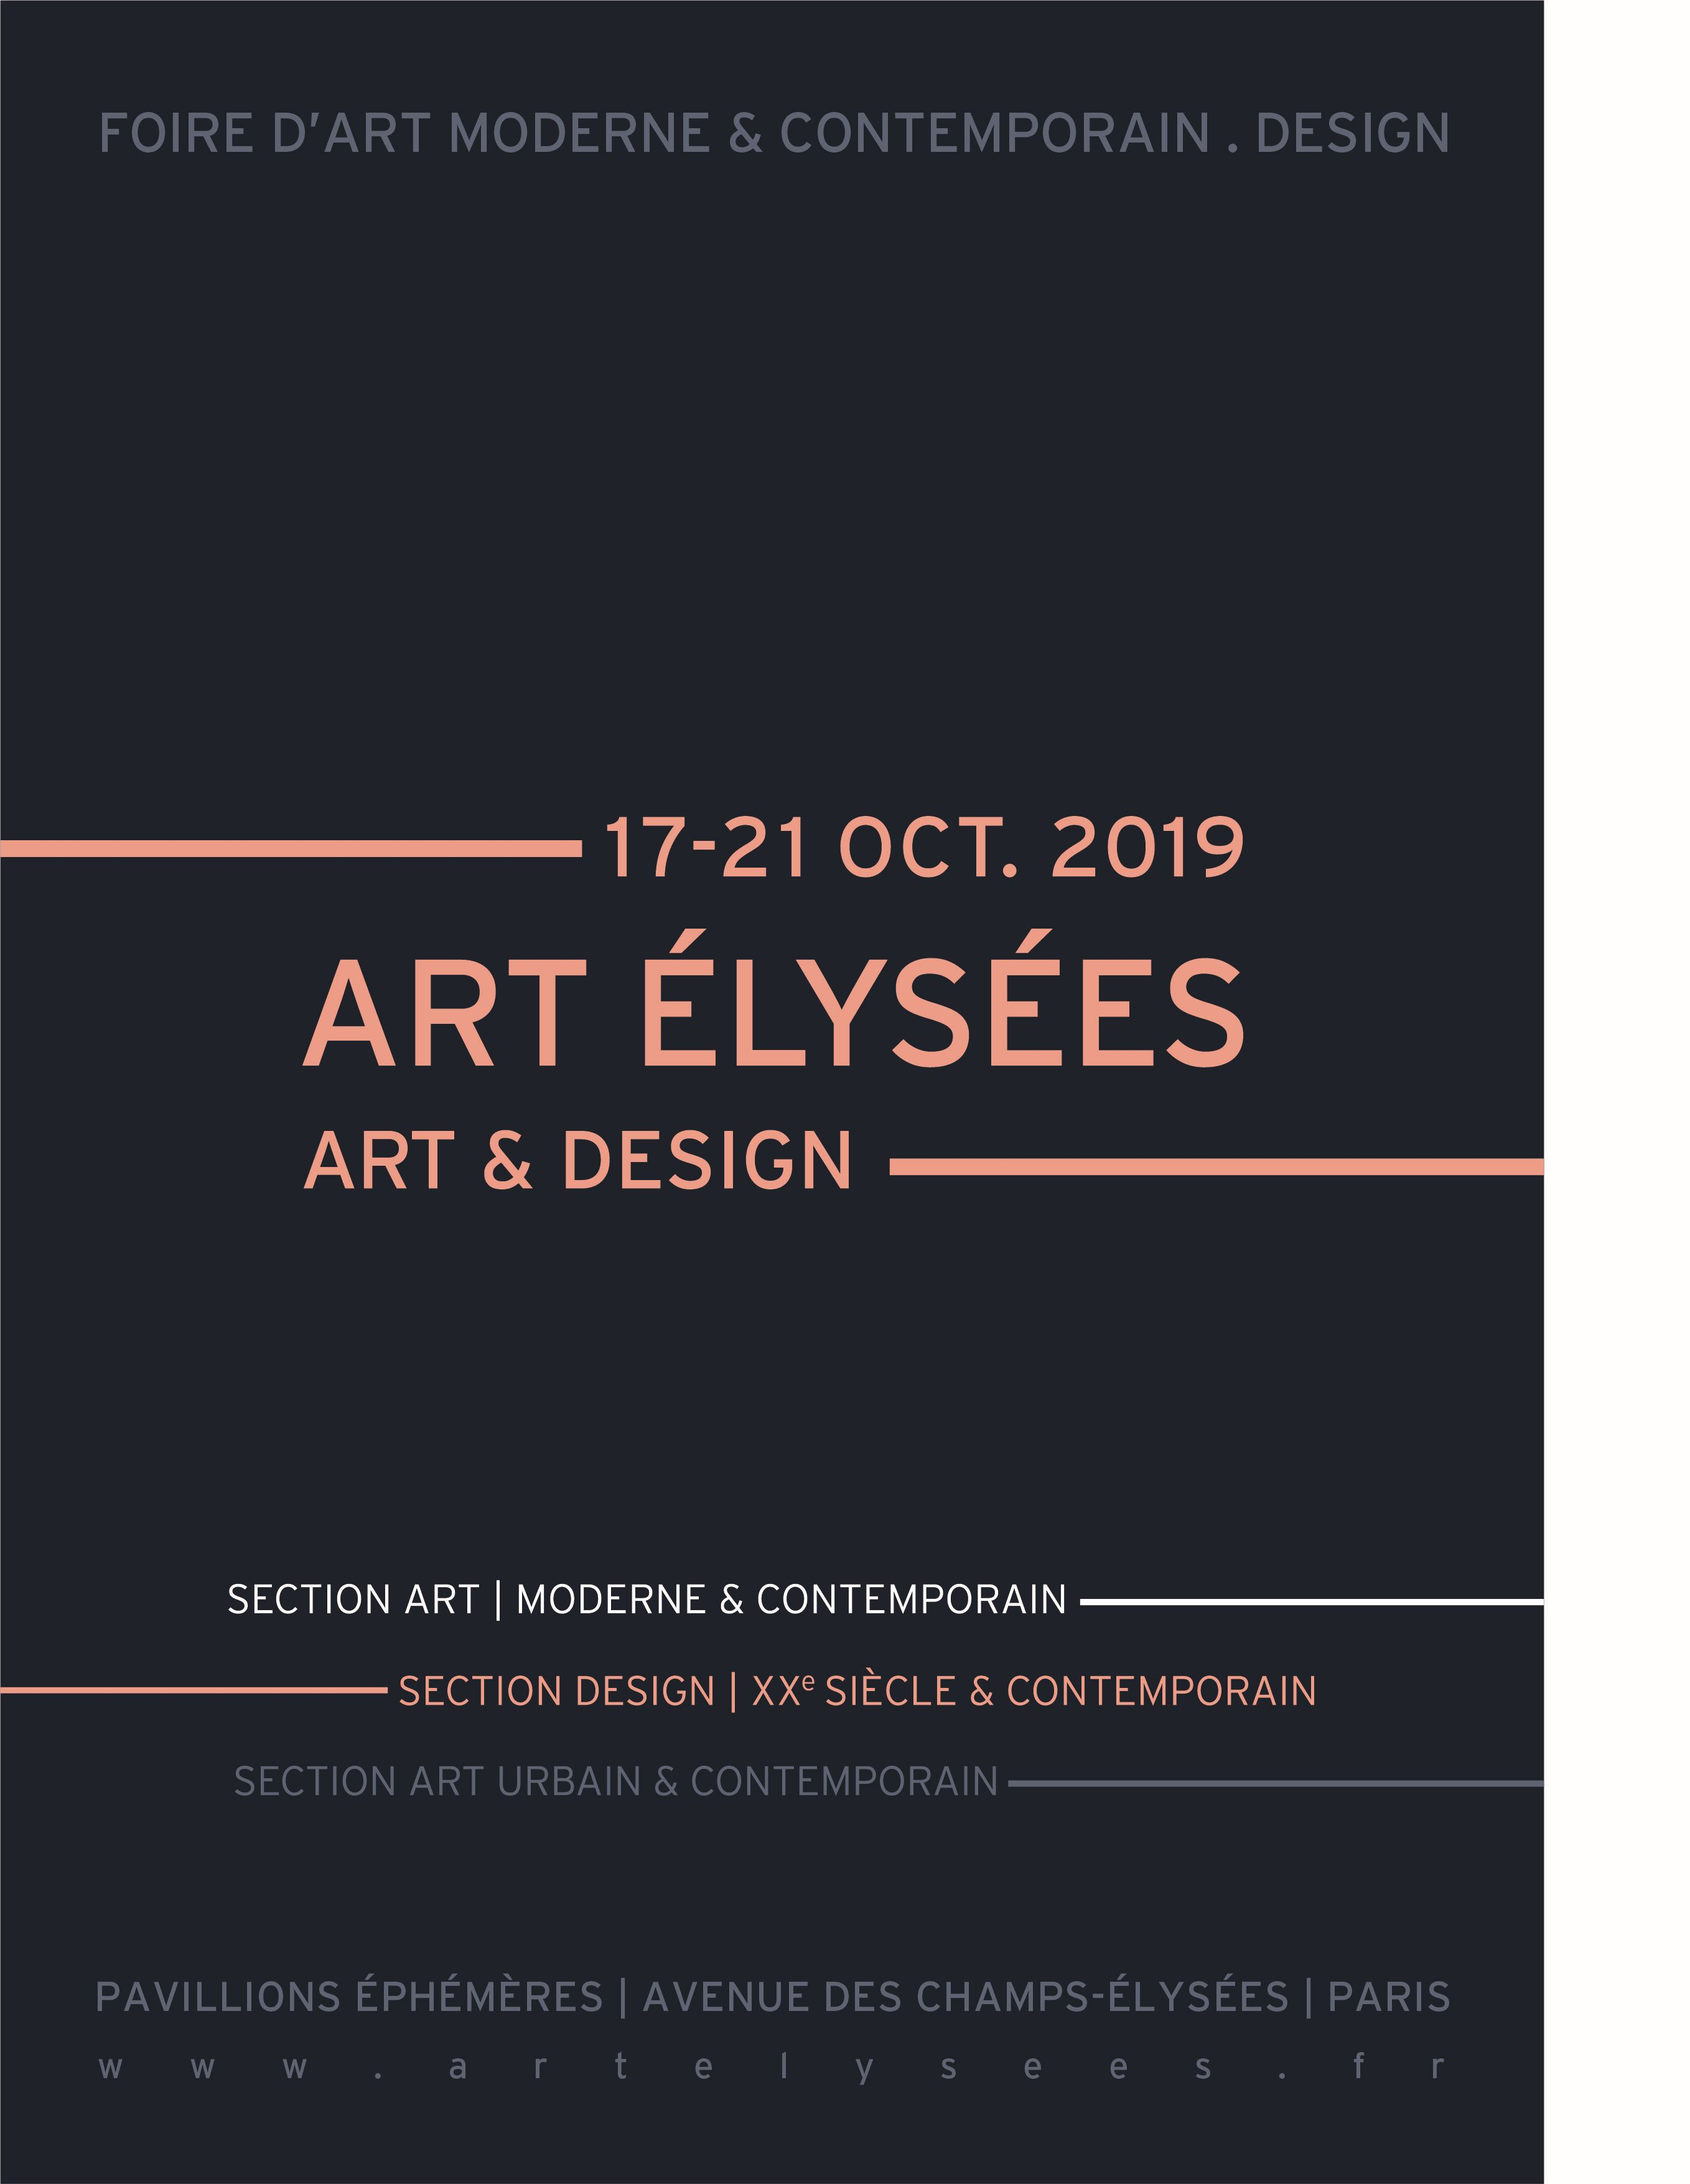 ART ELYSEES 2019